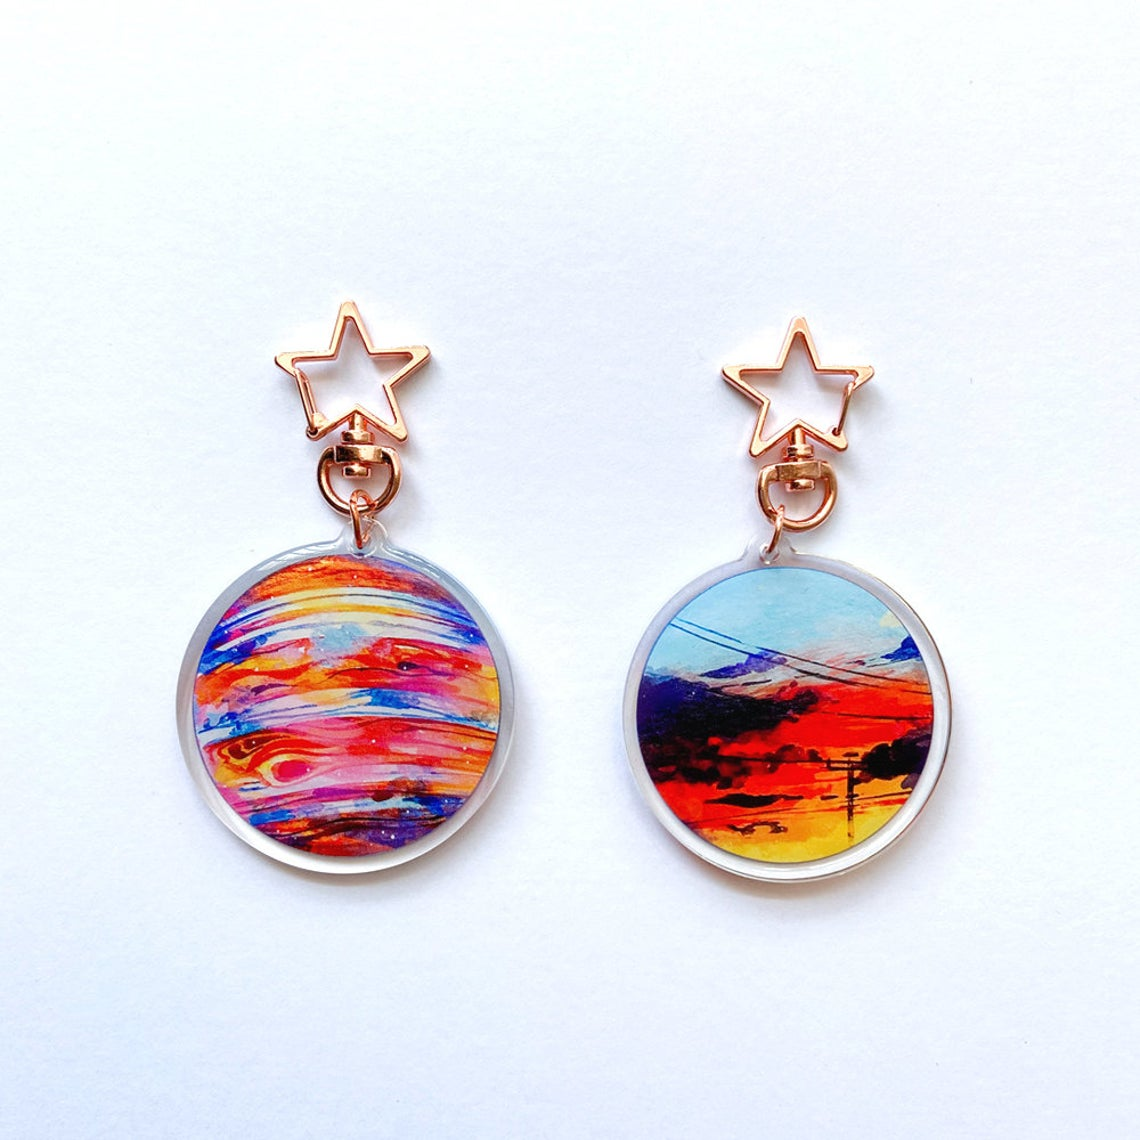 KAZEL LIM Watercolor Keychain - Jupiter Dusk